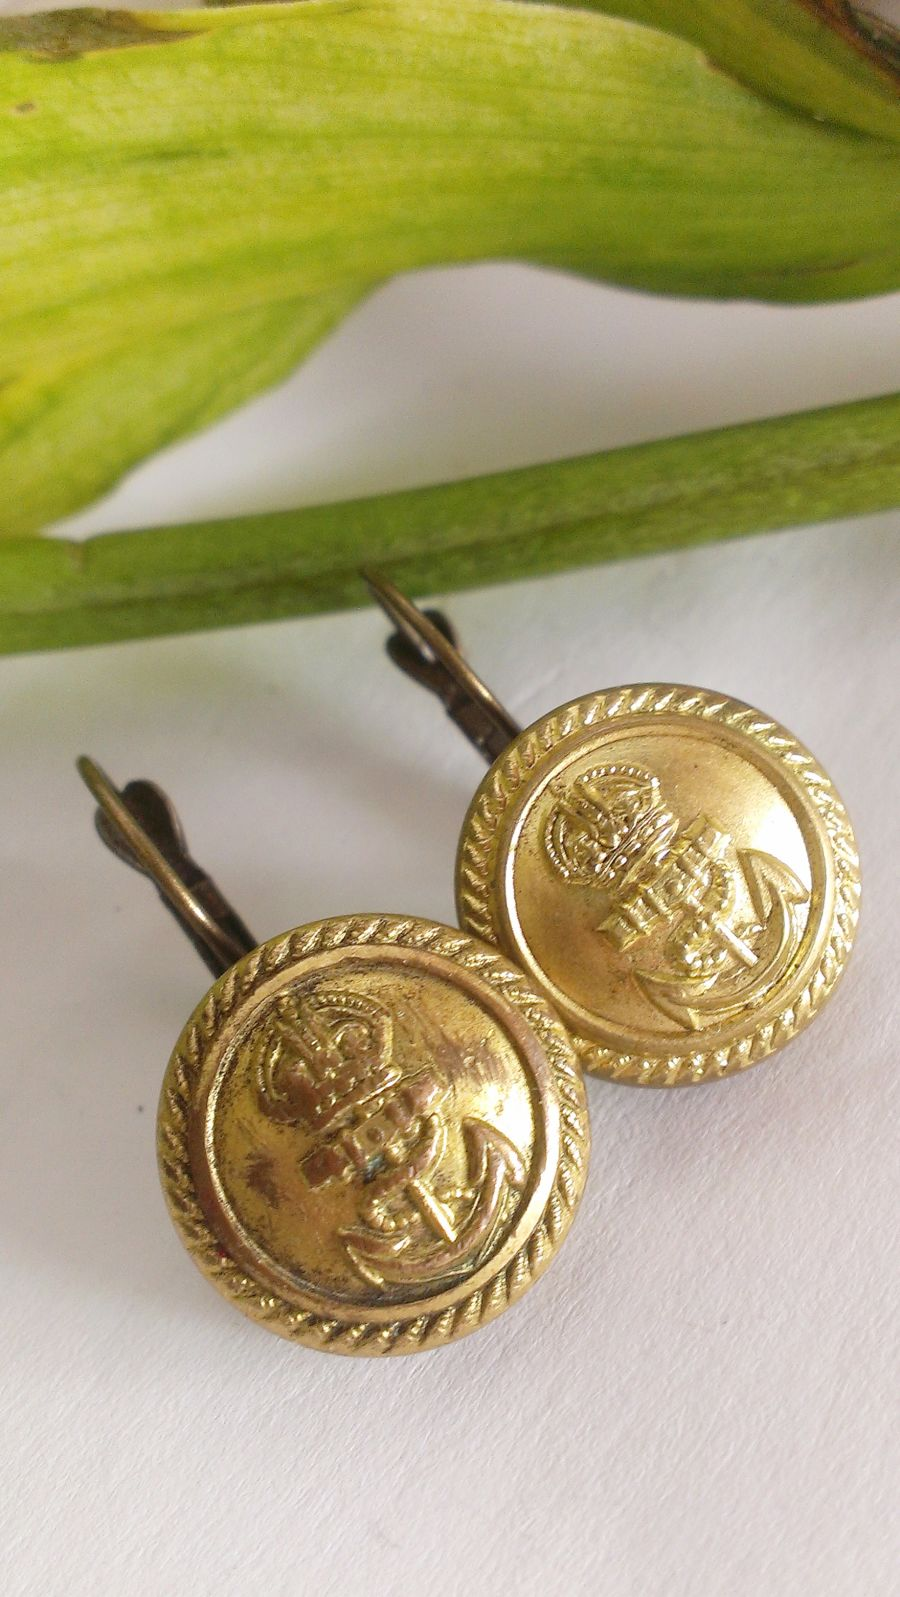 Merchant Royal Navy Or Shipping Button Antique Anchor Yacht Uniform Earrings Upcycle